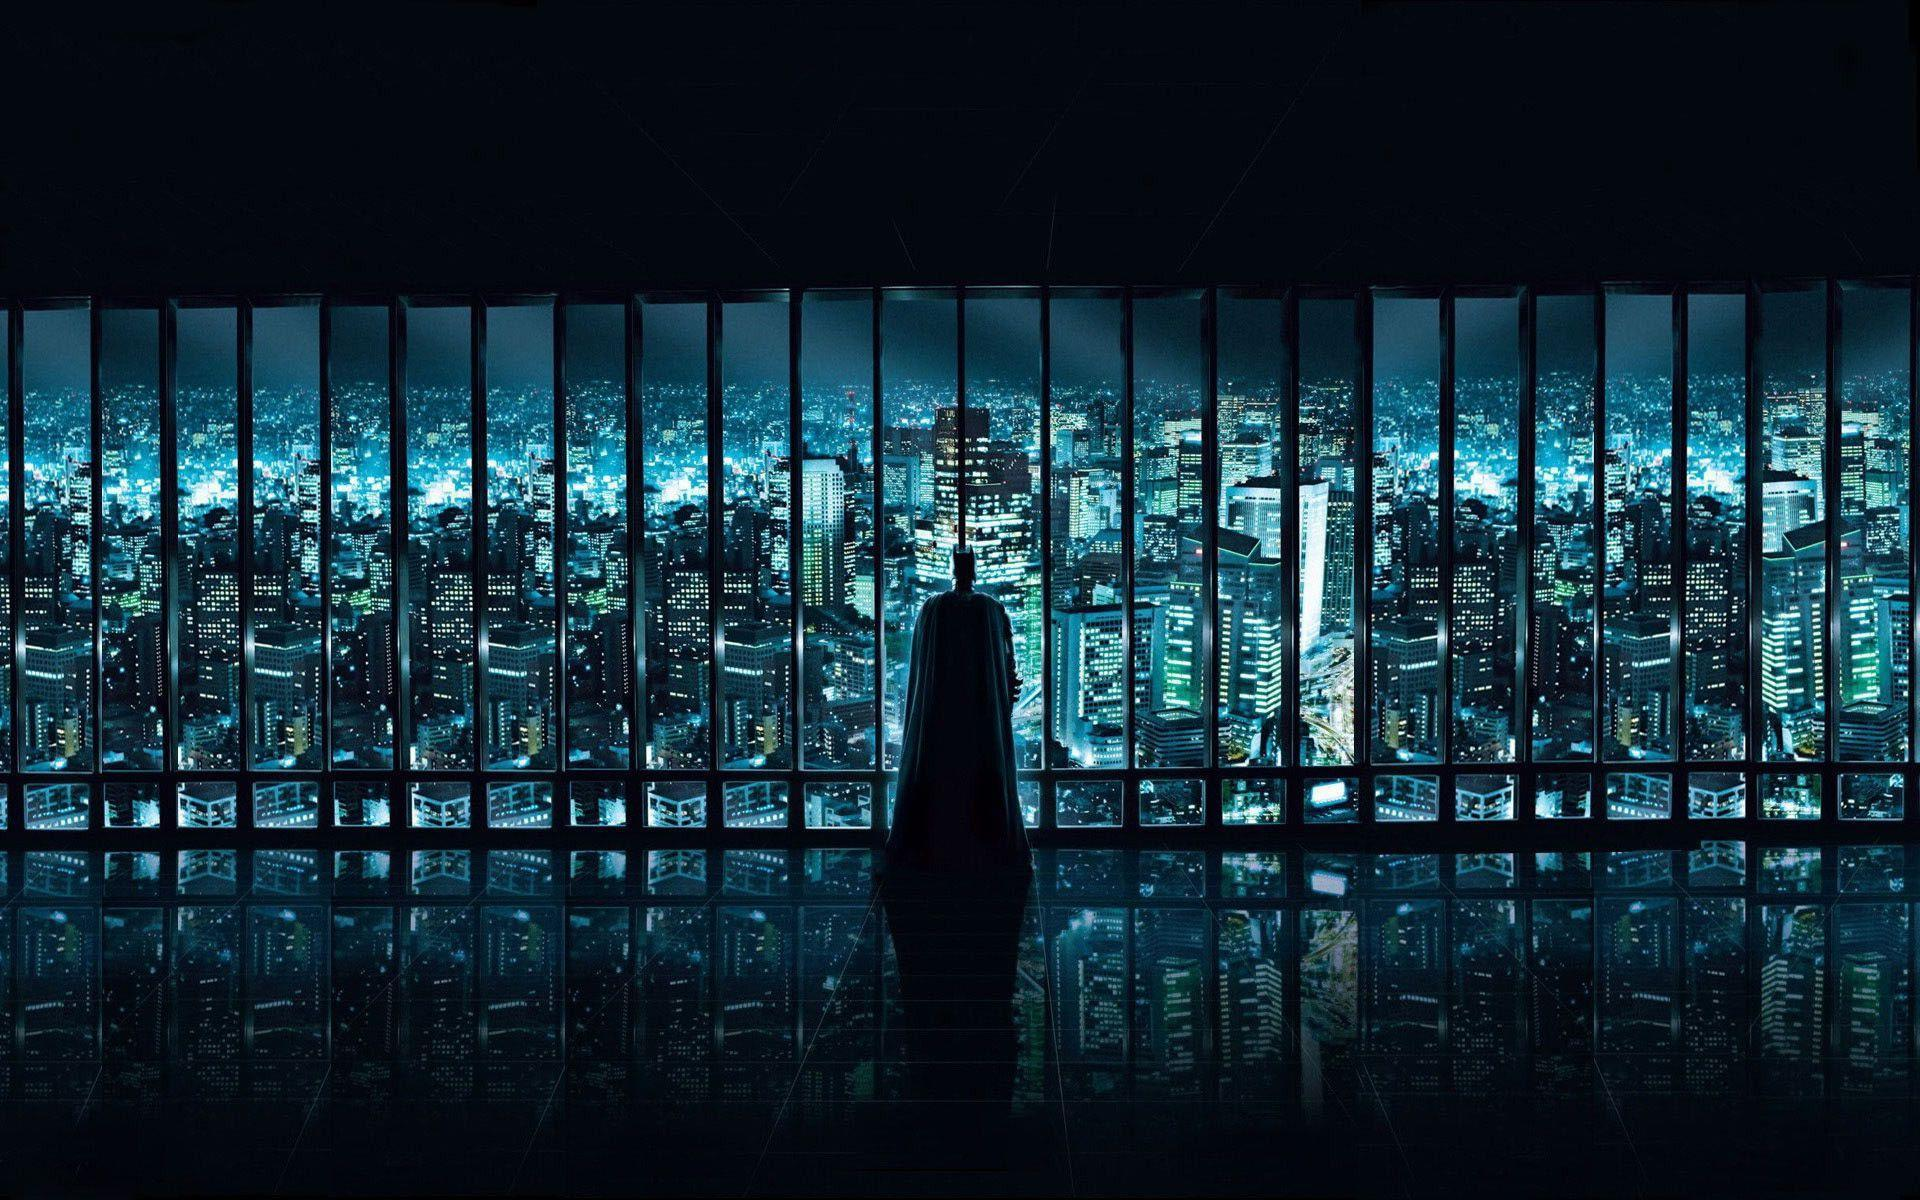 batman watching over gotham city | Wallpaper